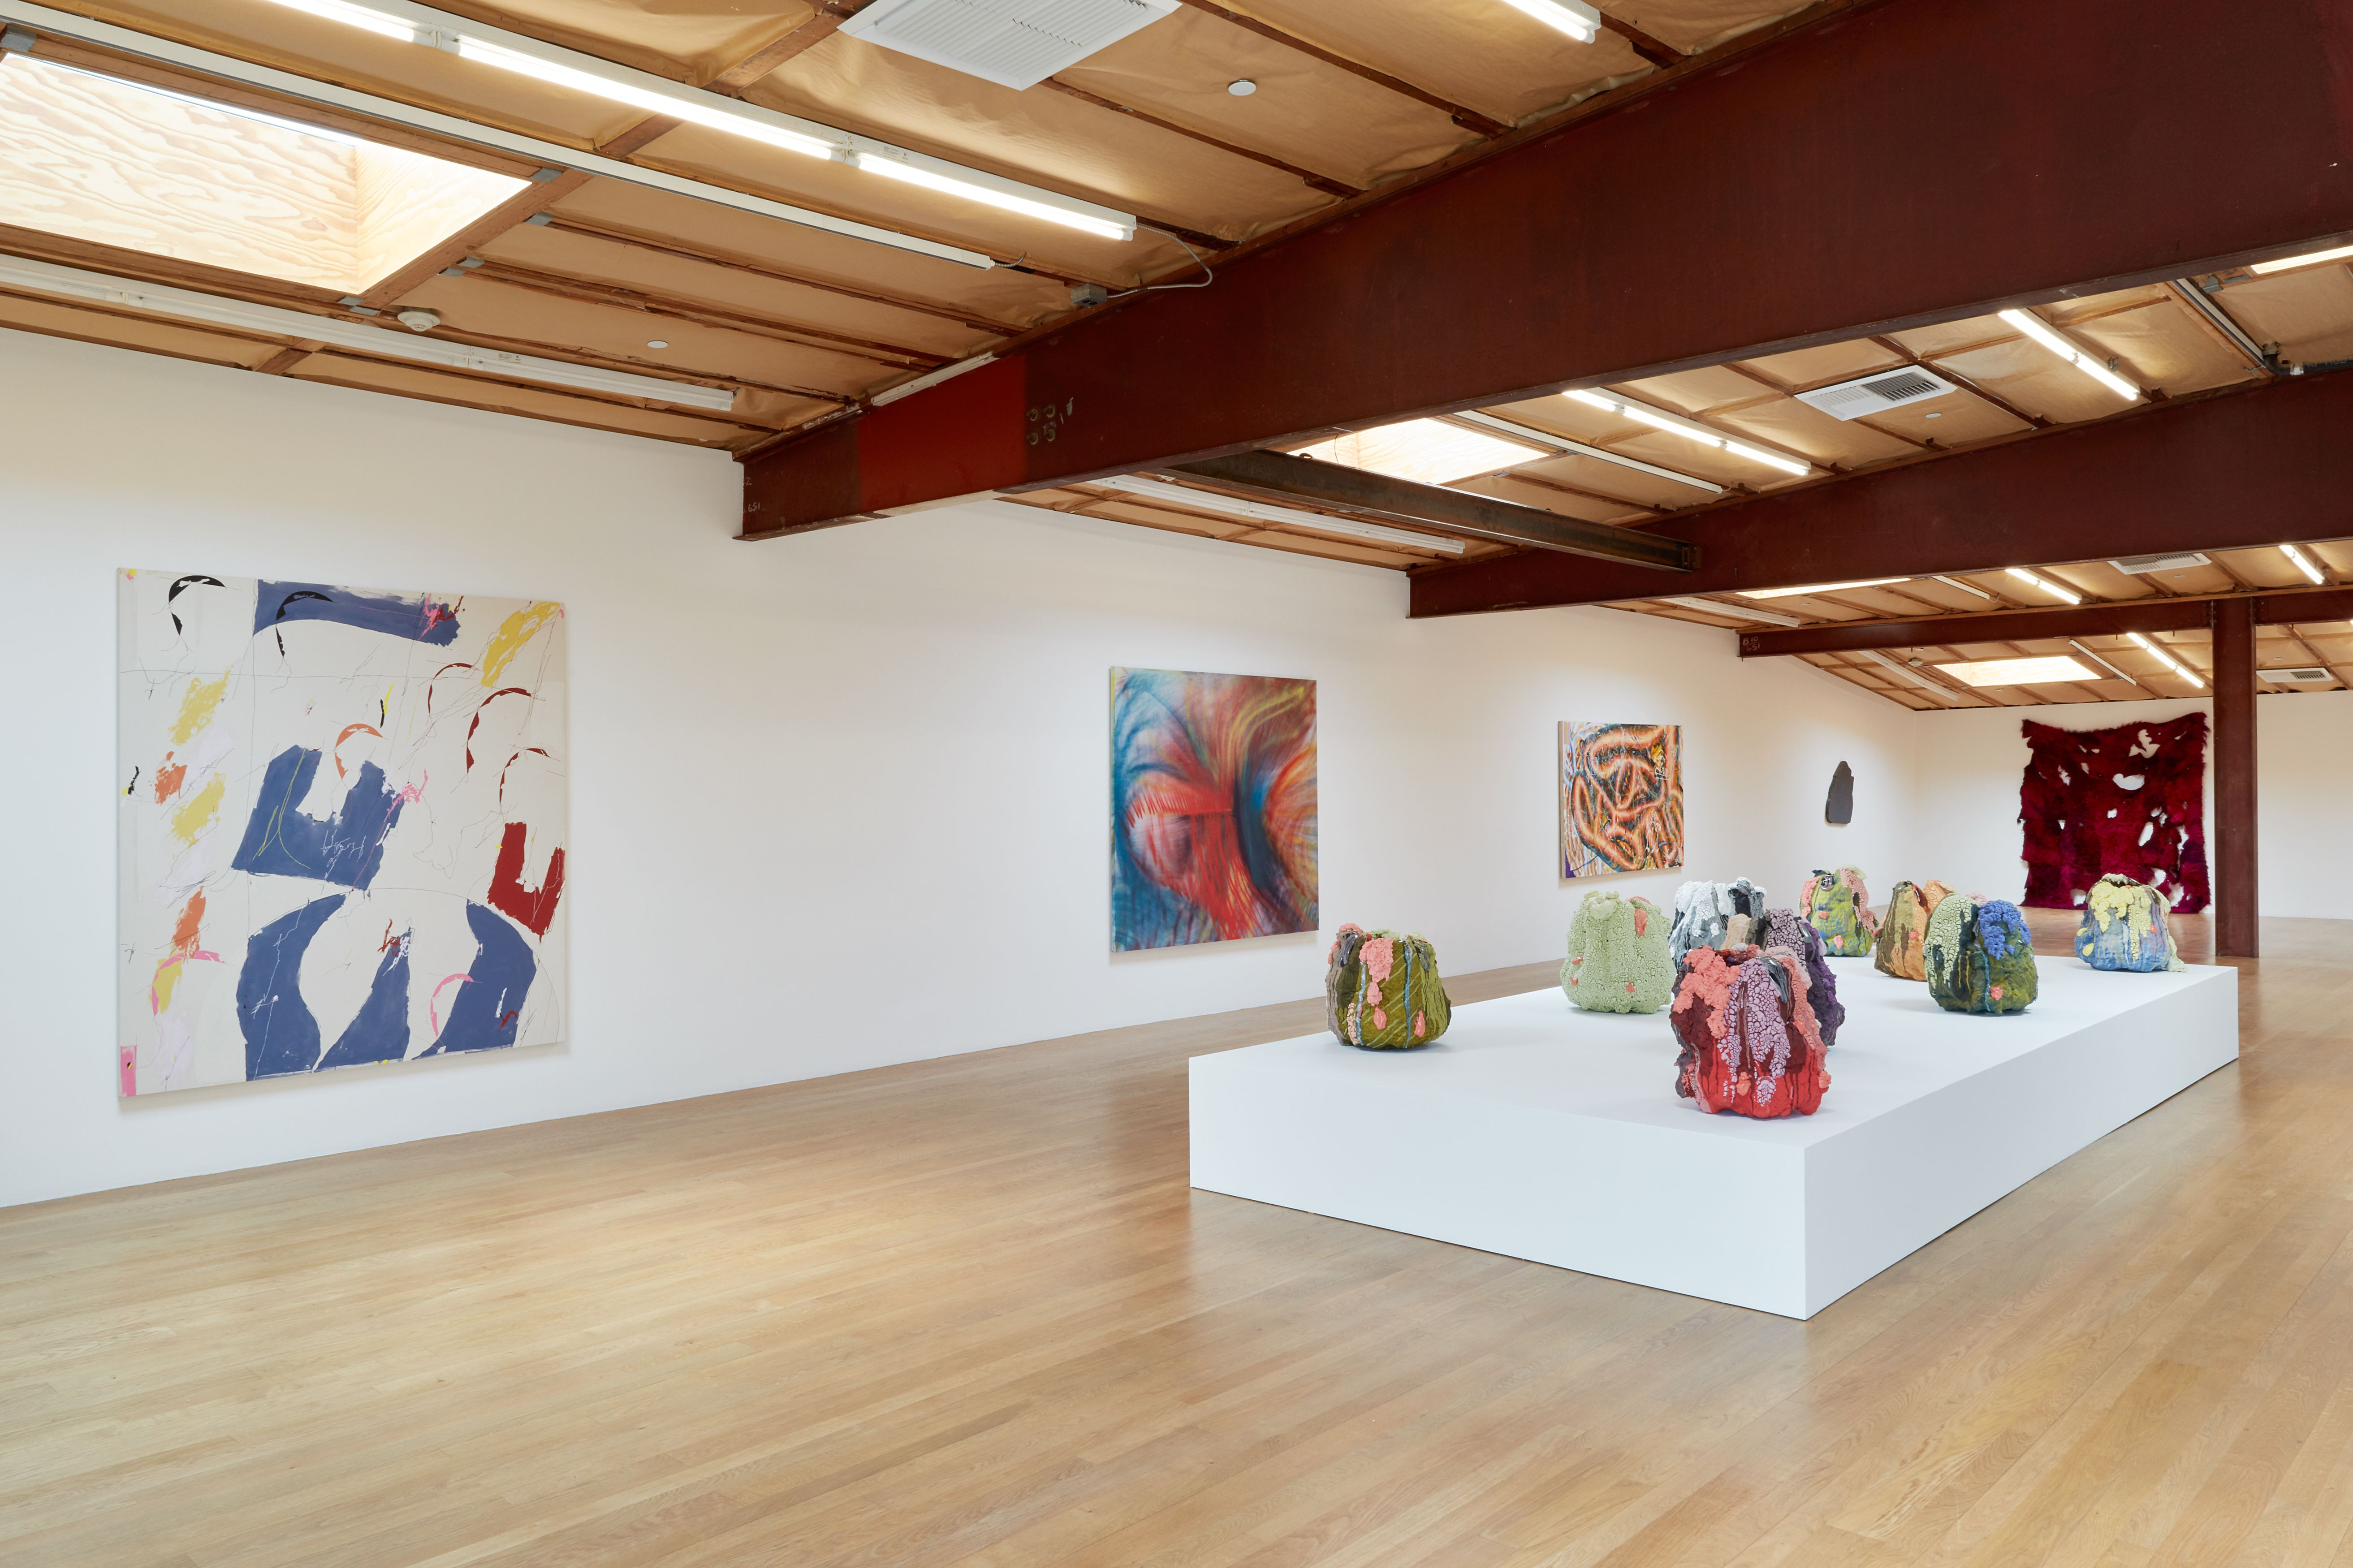 Installation view: On Boxing, Blum and Poe, Los Angeles, May 15 – June 26, 2021. Photo: Heather Rasmussen. Courtesy of the artists, Blum & Poe